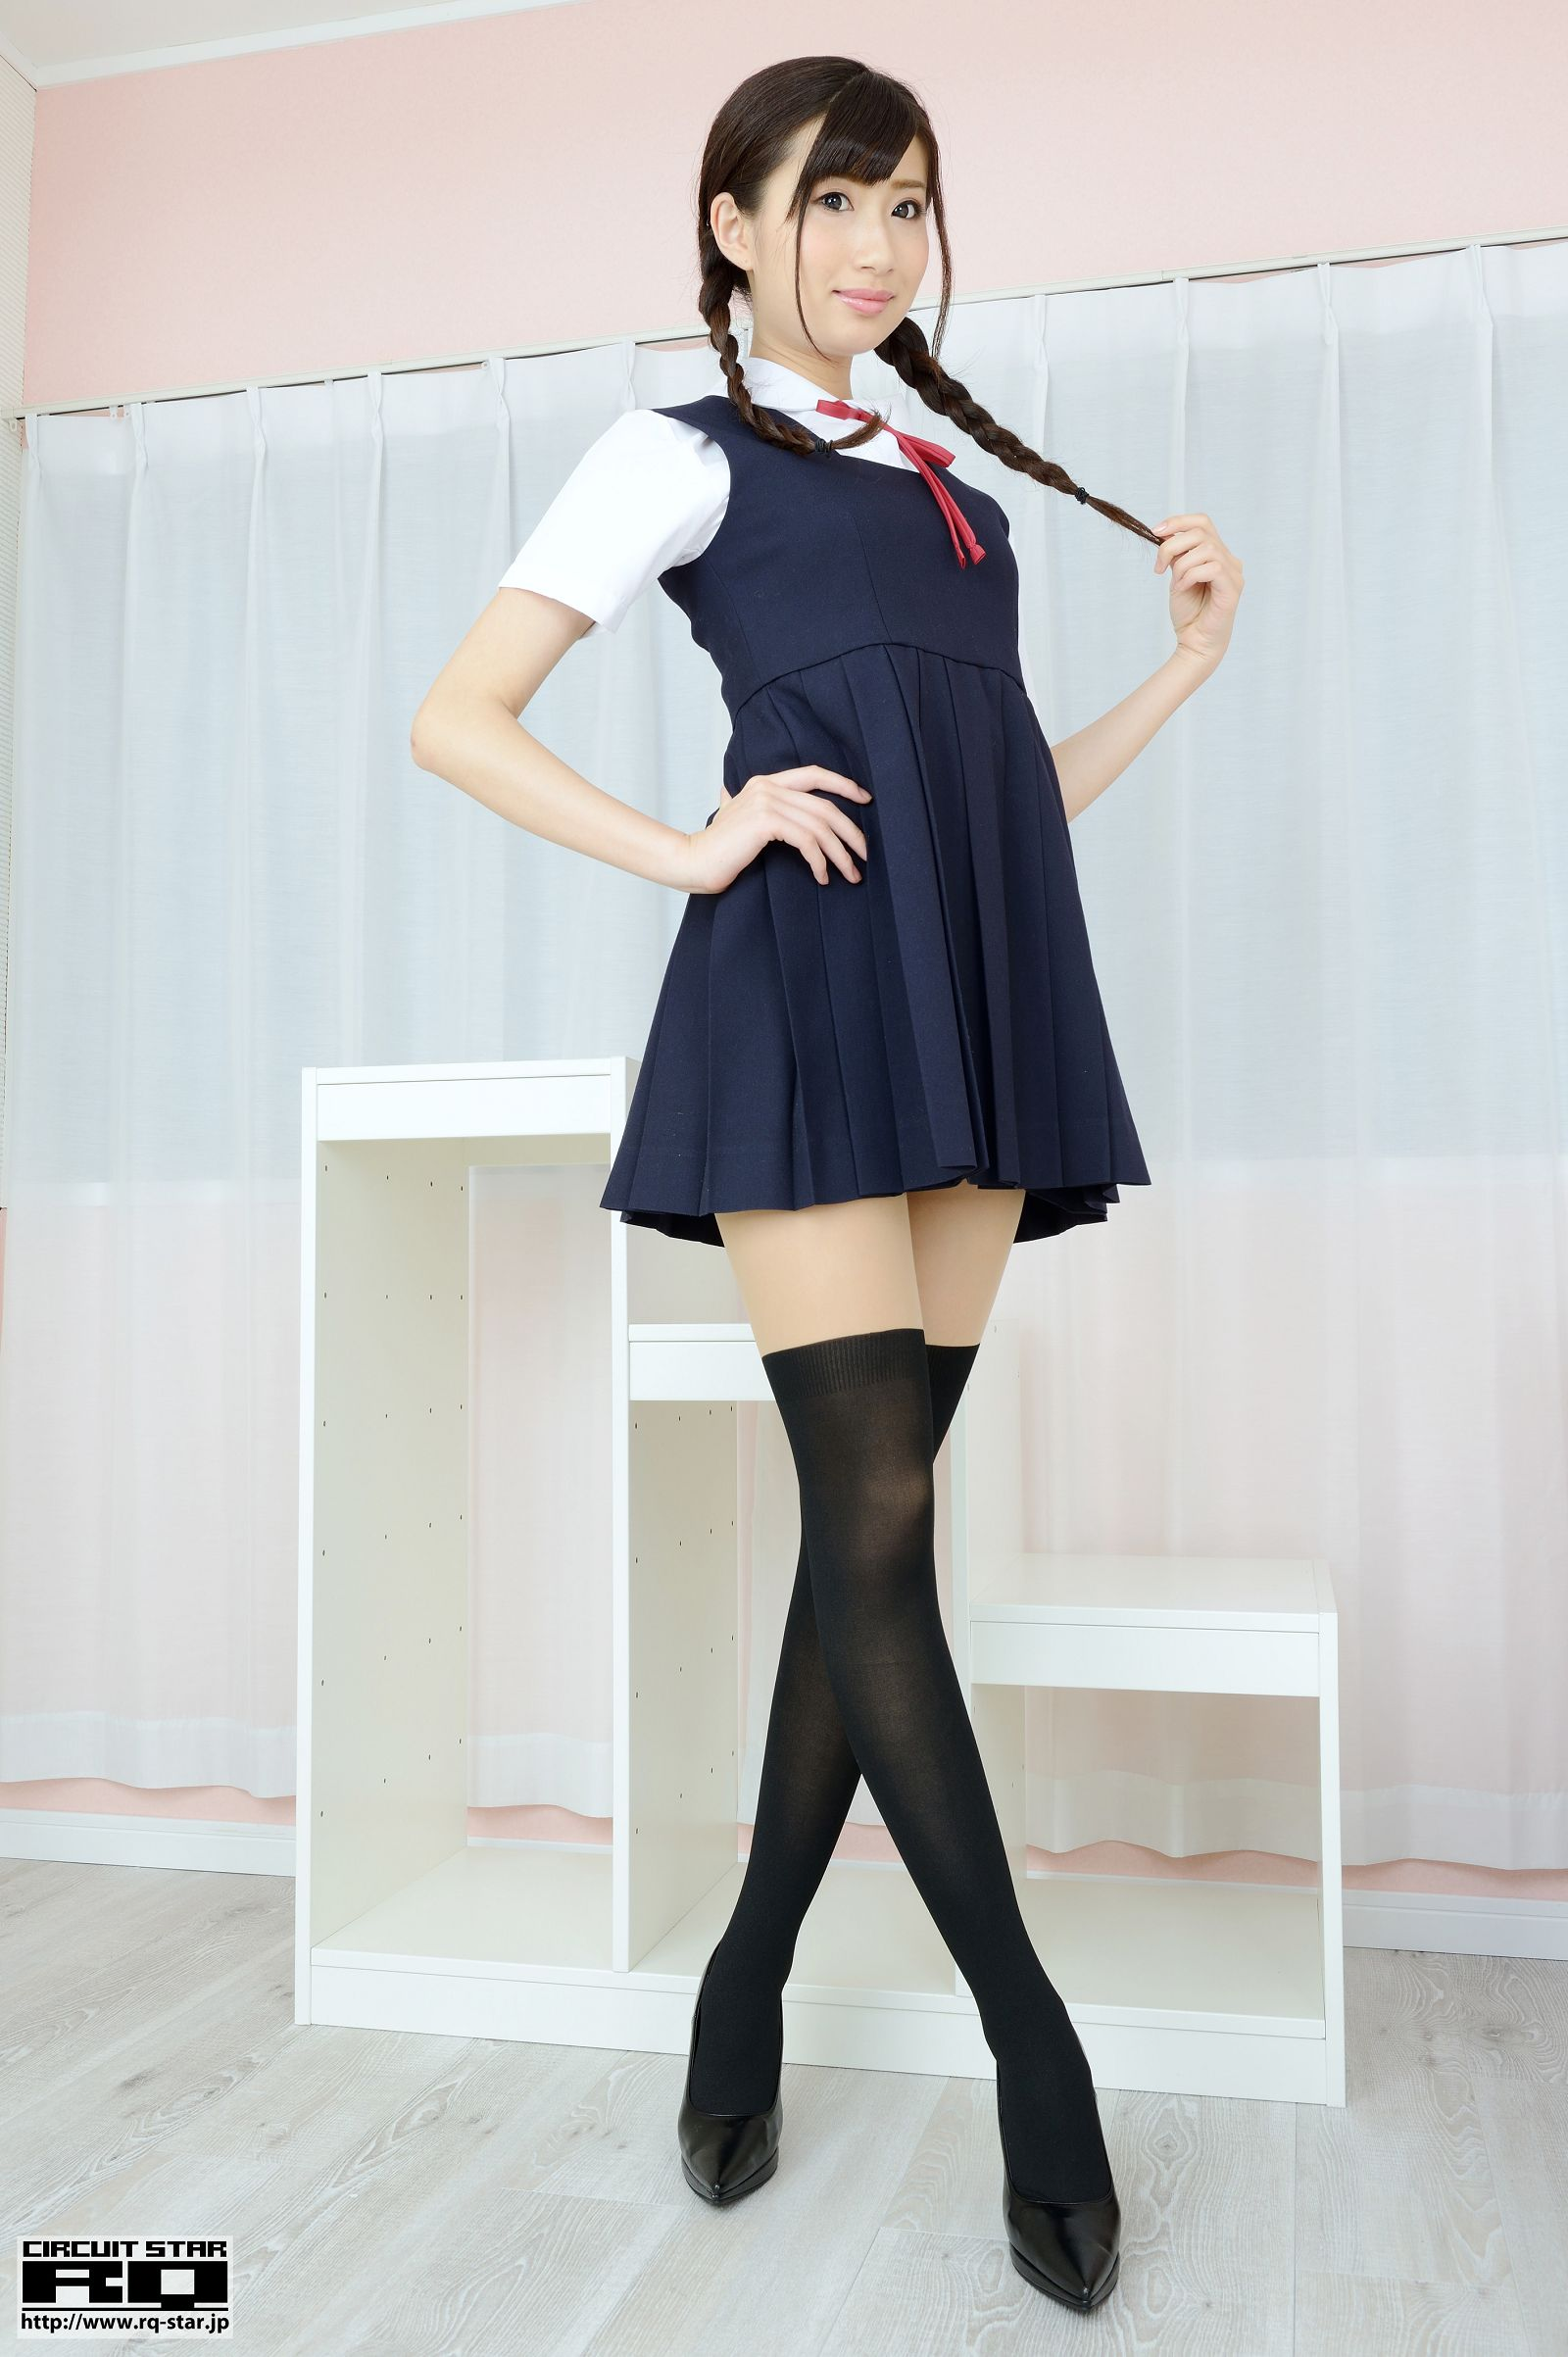 [RQ STAR美女] NO.00942 Ririno Oomiya 大宮梨々乃 School Girl[100P] RQ STAR 第1张